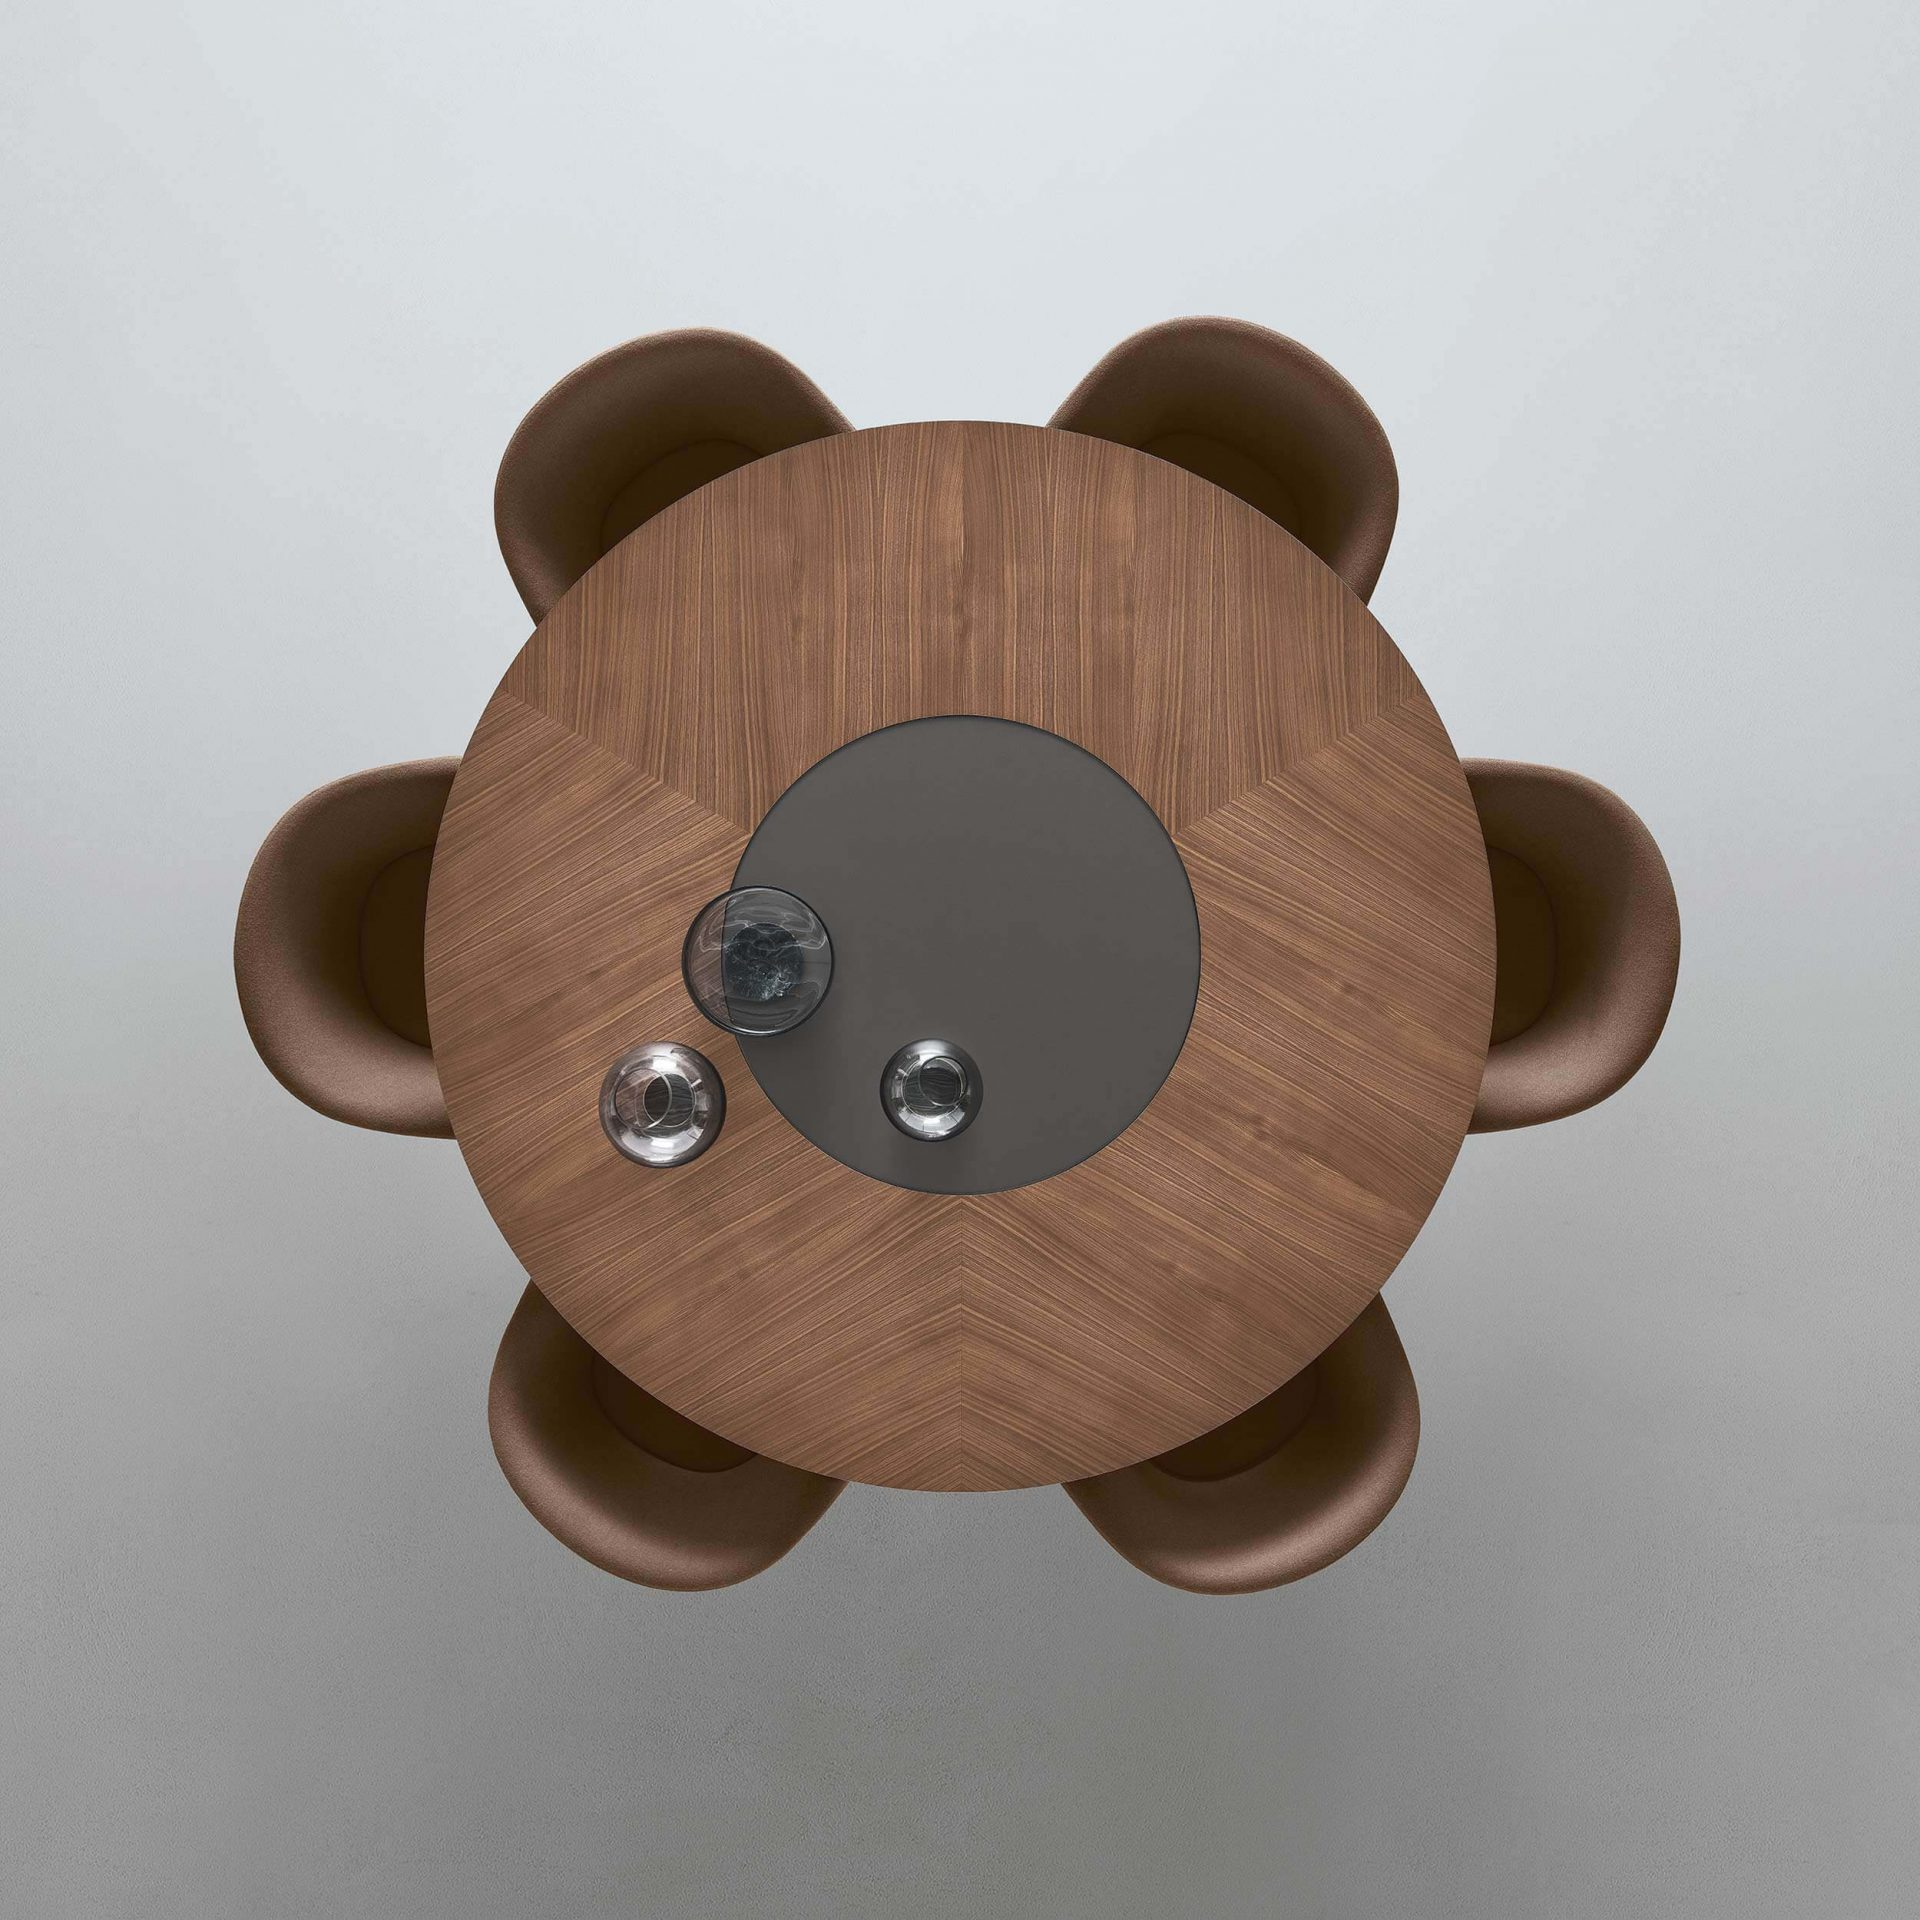 Manta table with lazy susan top